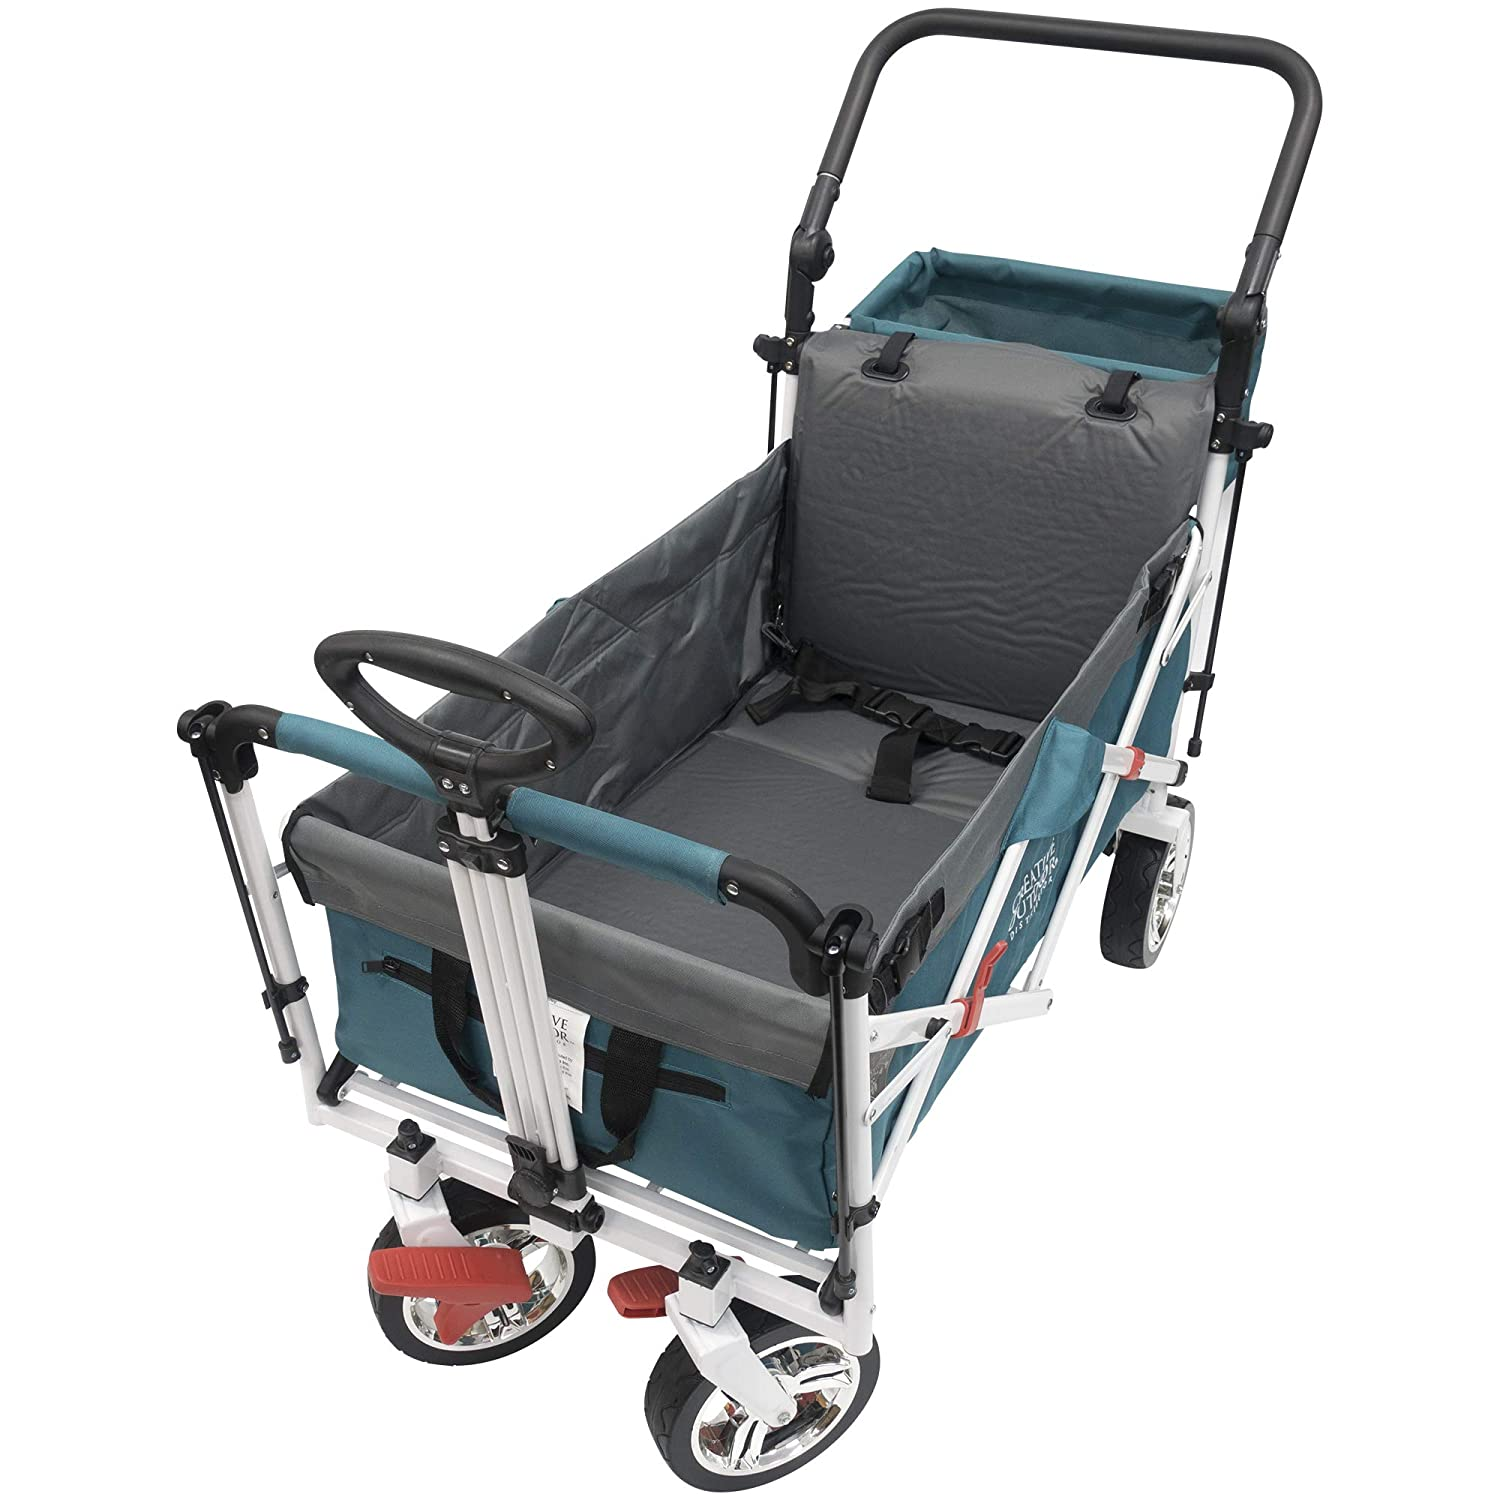 Creative Outdoor Push N Pull Wagon Accessory - Air Filled Seat Pad & Back Rest Wagons - Gray Creative Outdoor Distributors